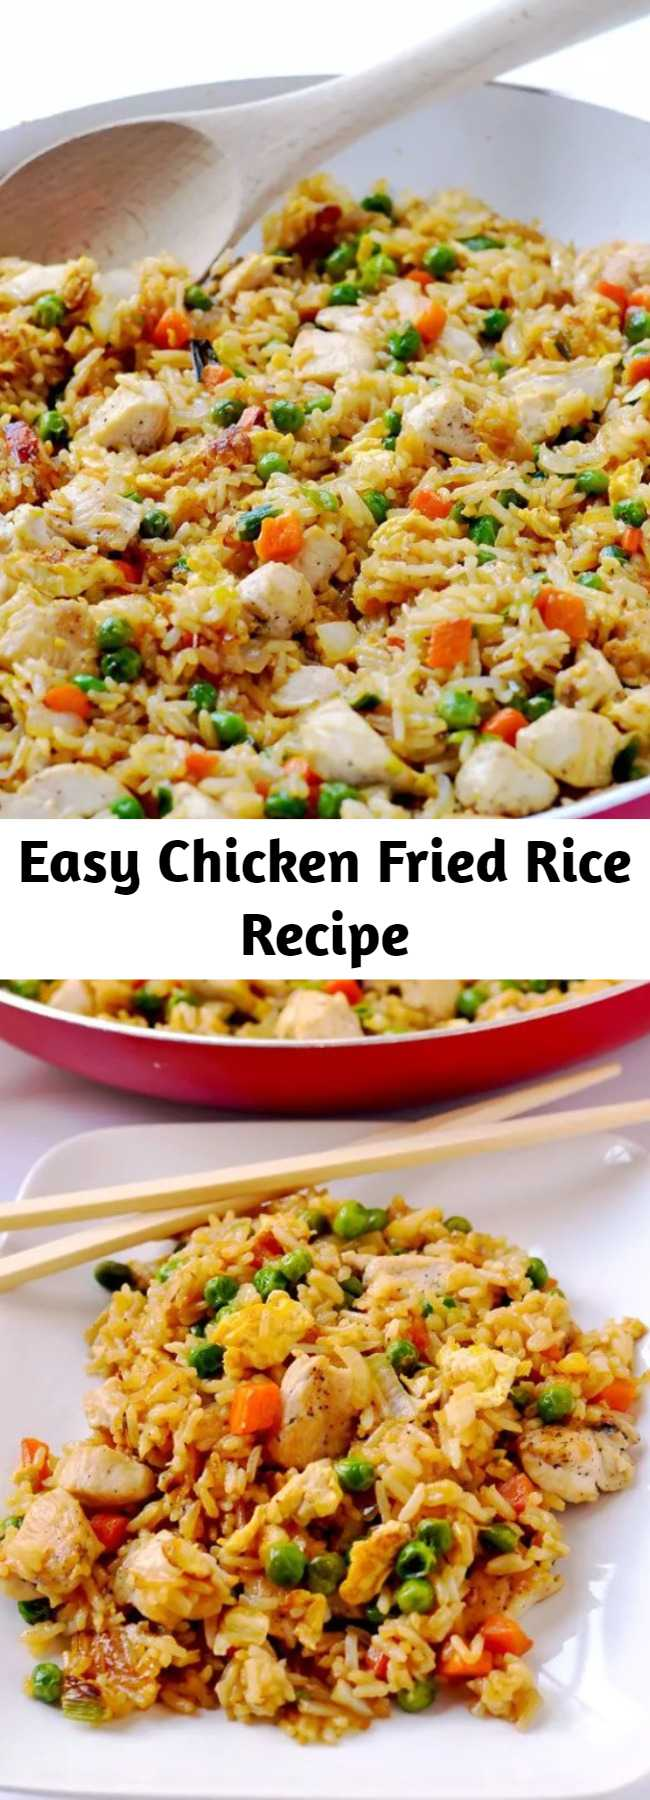 Easy Chicken Fried Rice Recipe - Skip the take-out and make this easy chicken fried rice at home. It's a simple weeknight dinner that's so budget friendly, and it's a real crowd-pleaser! #chicken #friedrice